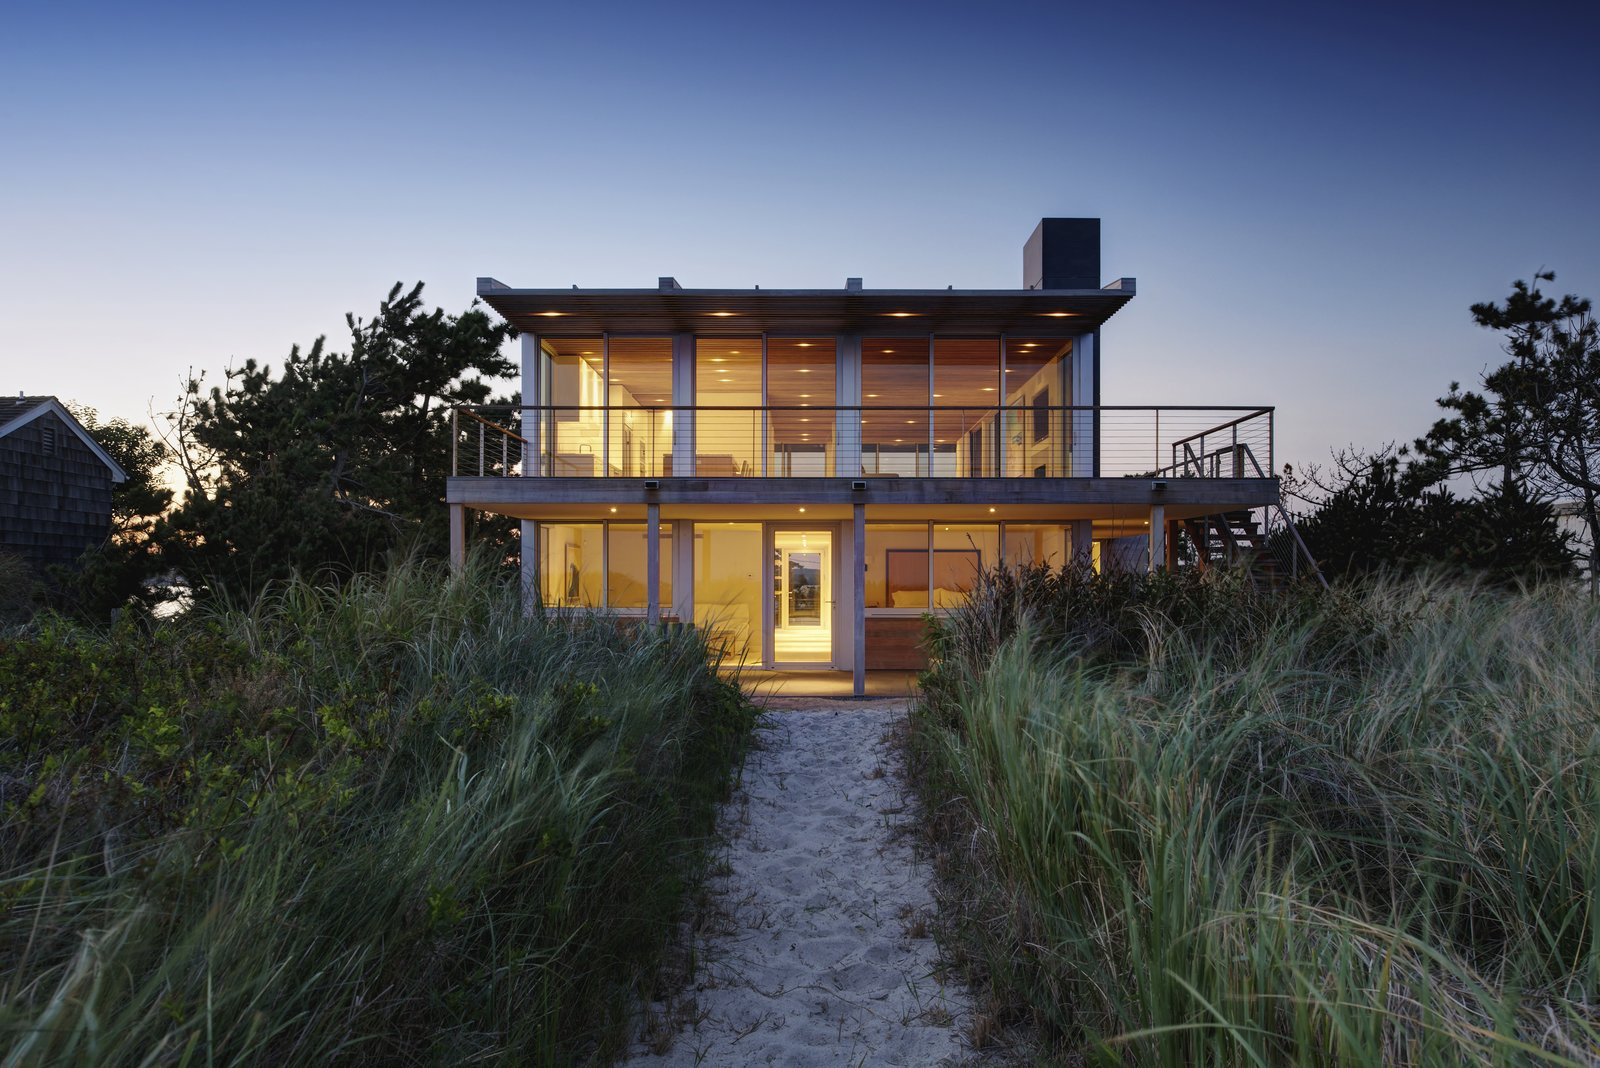 An existing non-descript structure, perched above the crest of the dune between the ocean and bay, was thoroughly transformed. We utilized clearly defined volumes, simple, durable, yet elegant materials and details instilling a strong connection between the indoors and out.  Seaside by Stelle Lomont Rouhani Architects